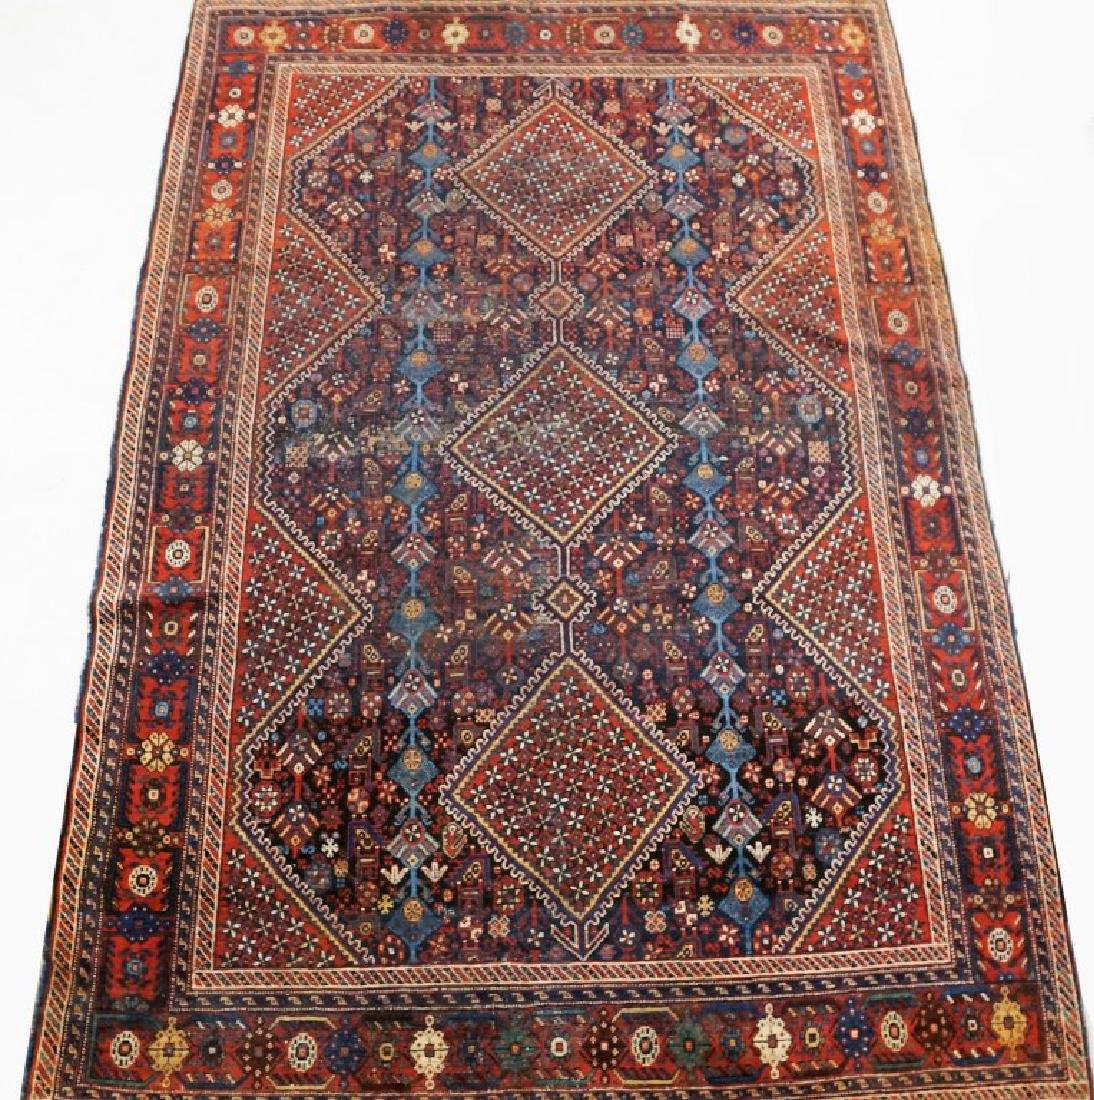 ANTIQUE HAND KNOTTED BALUCH RUG